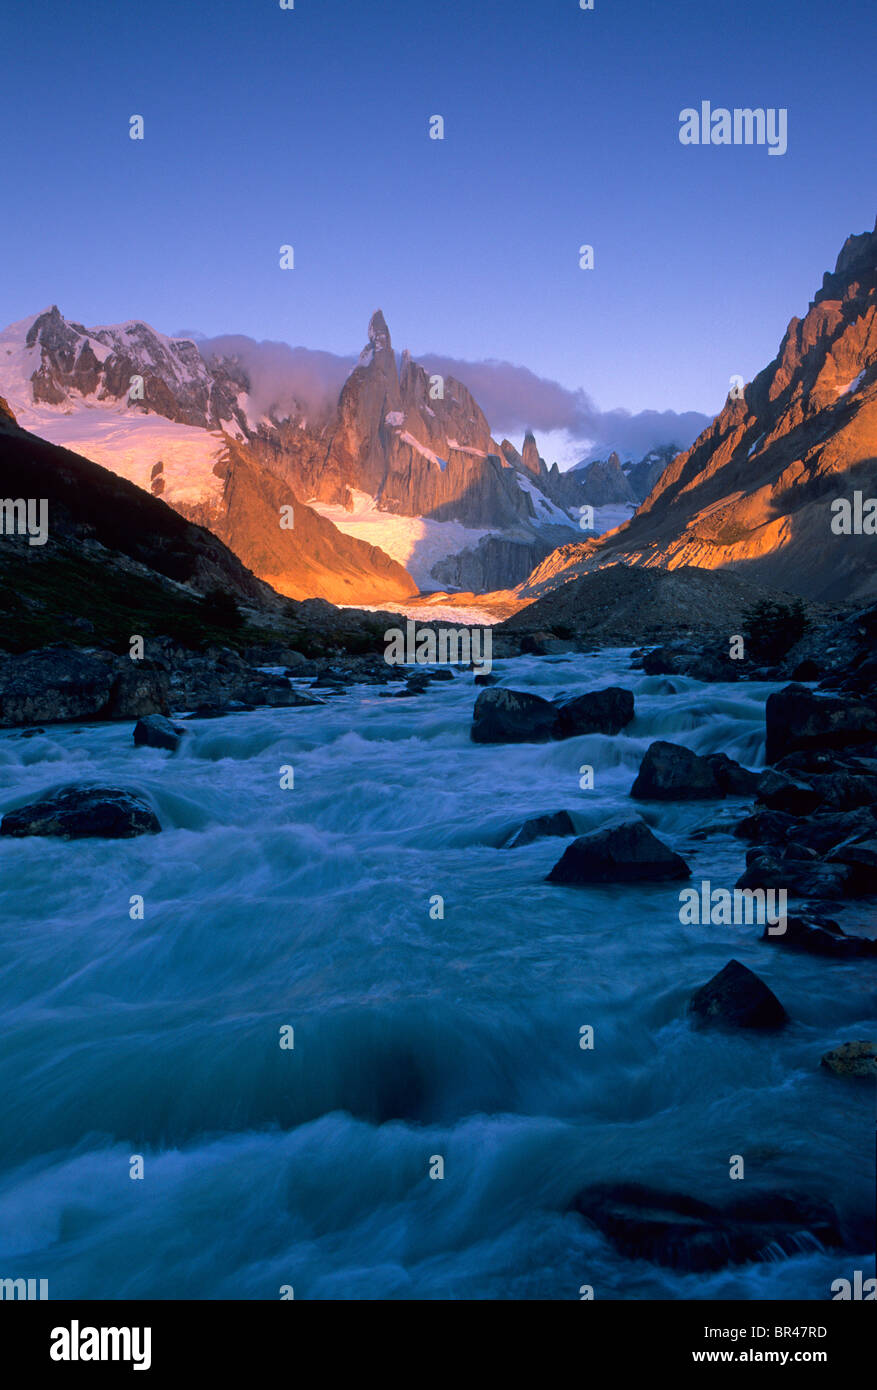 Sunrise lights a mountain landscape in Patagonia, Argentina. - Stock Image